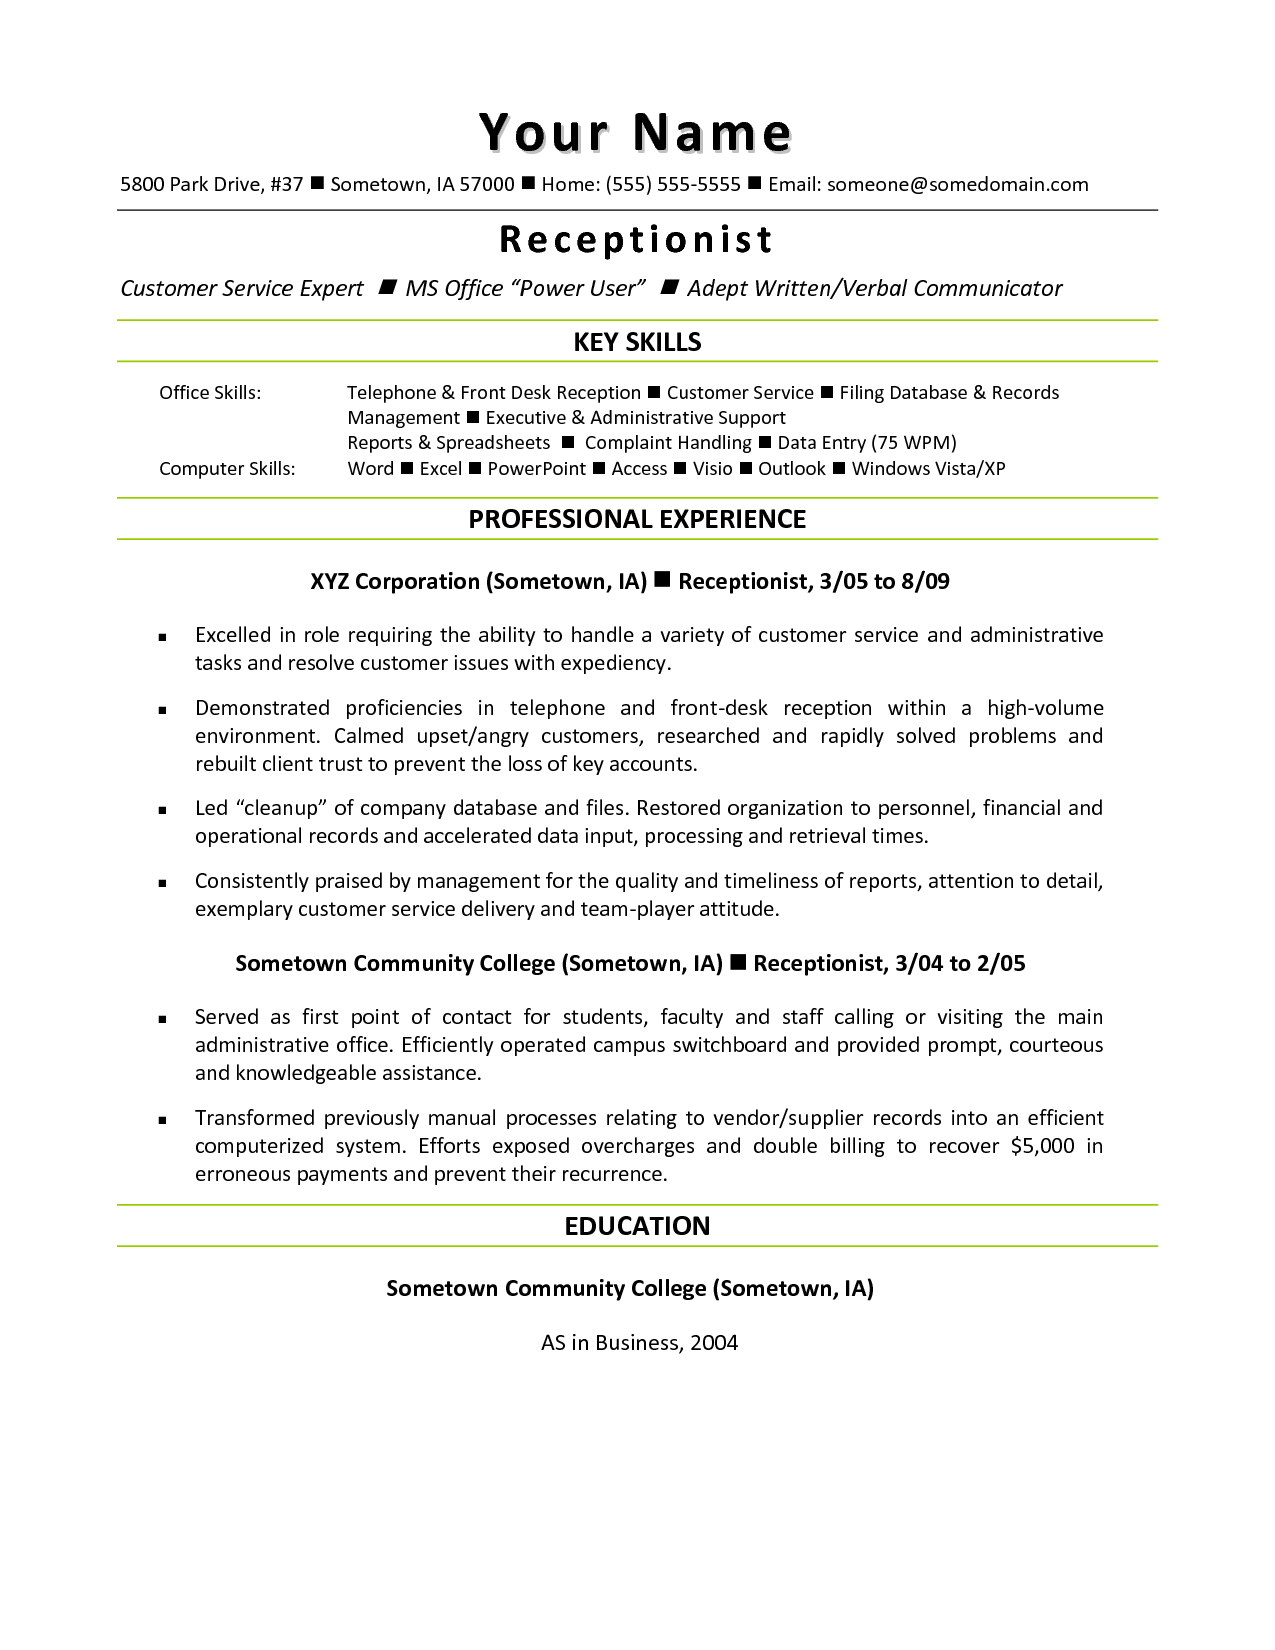 law front office receptionist resume key skills and professional experience law firm resume - Sample Resume For Receptionist In Law Firm